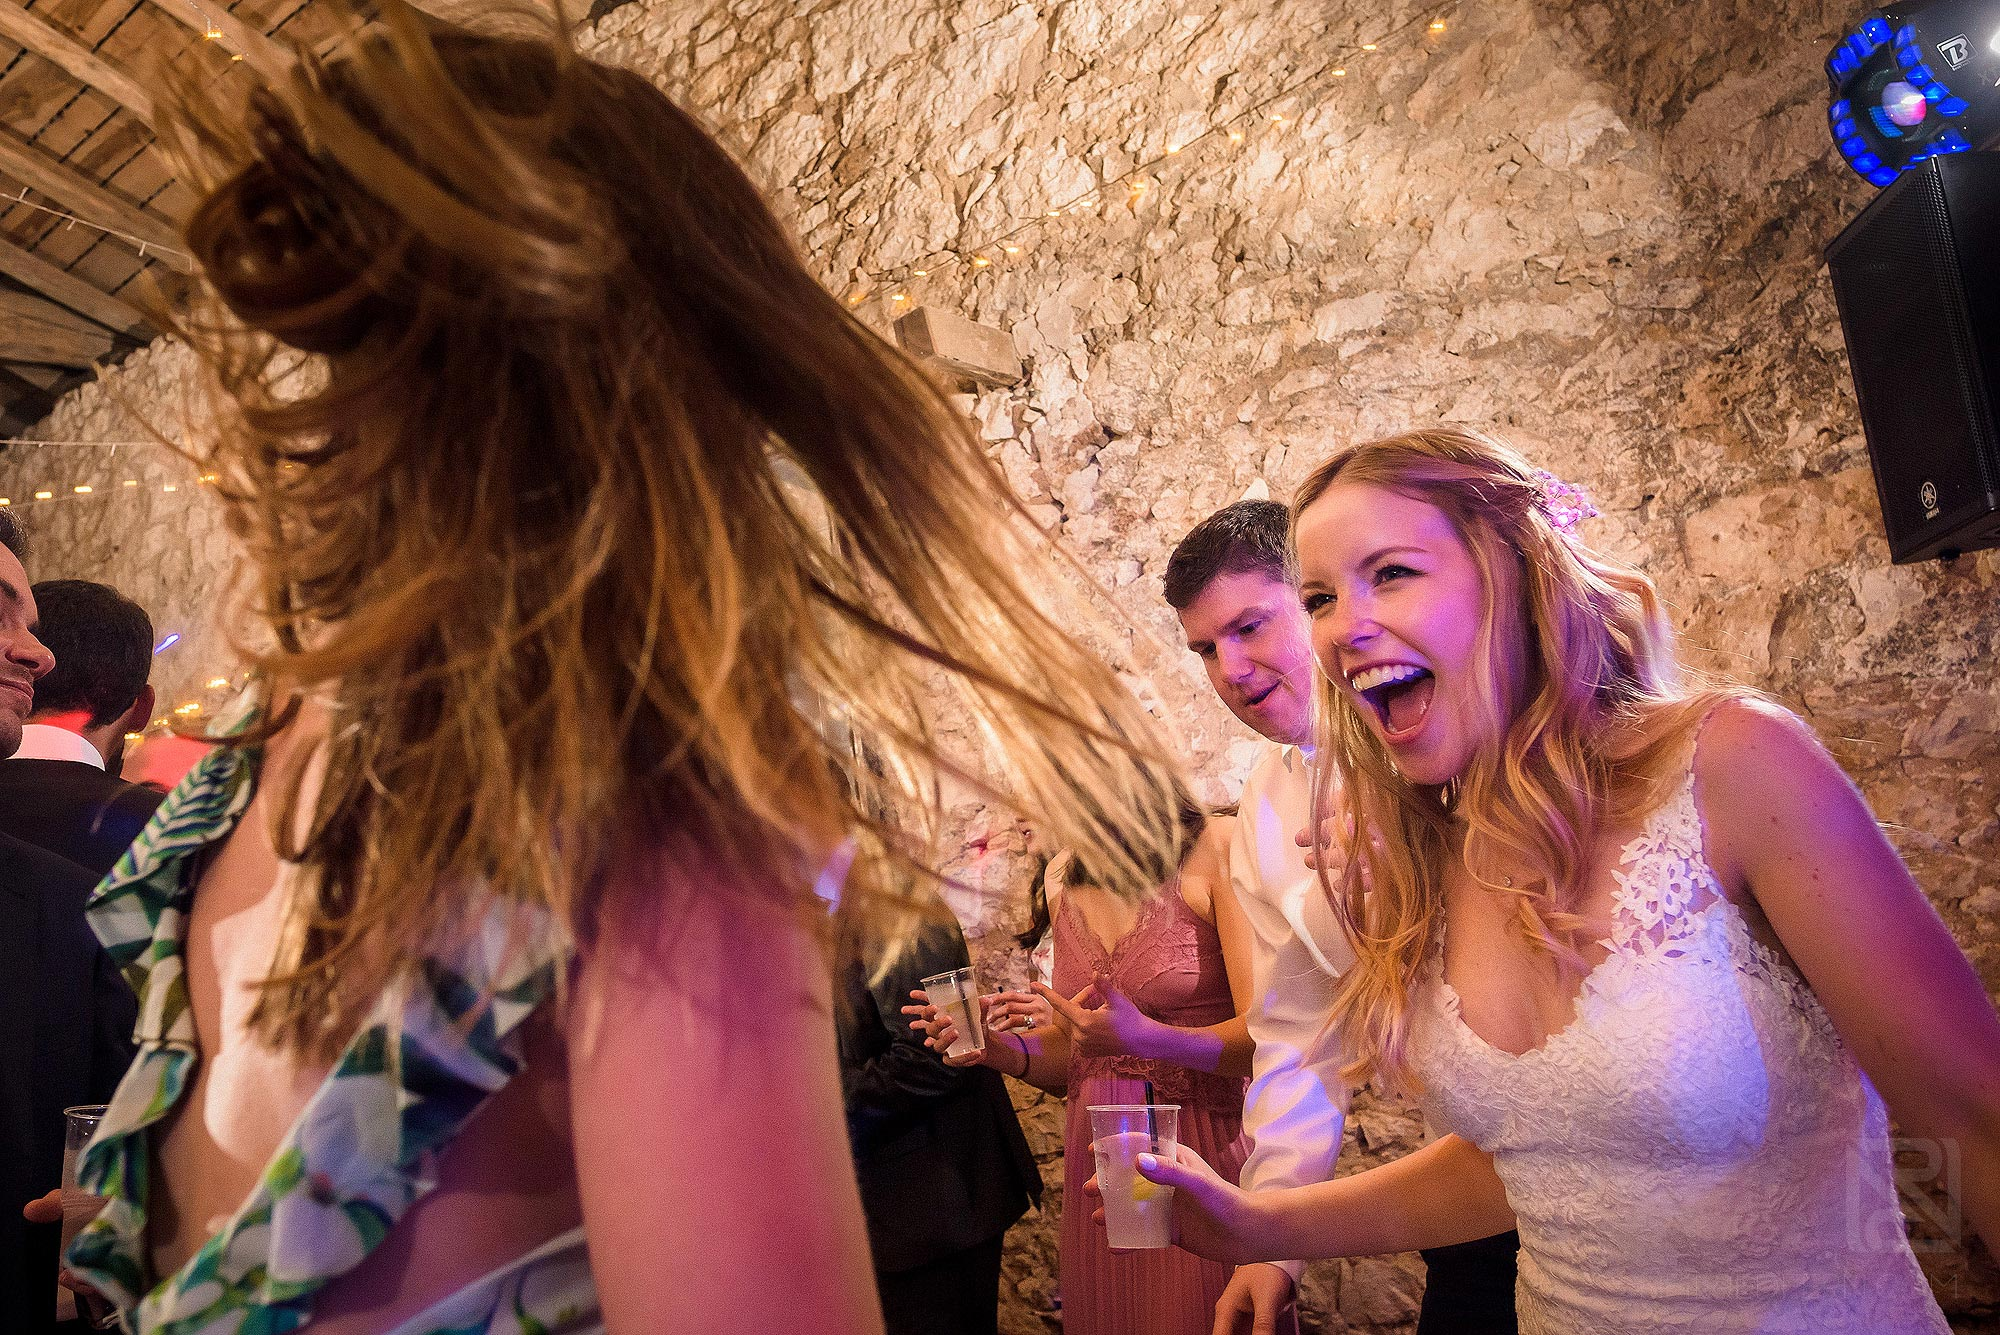 bride and friend laughing on dancefloor